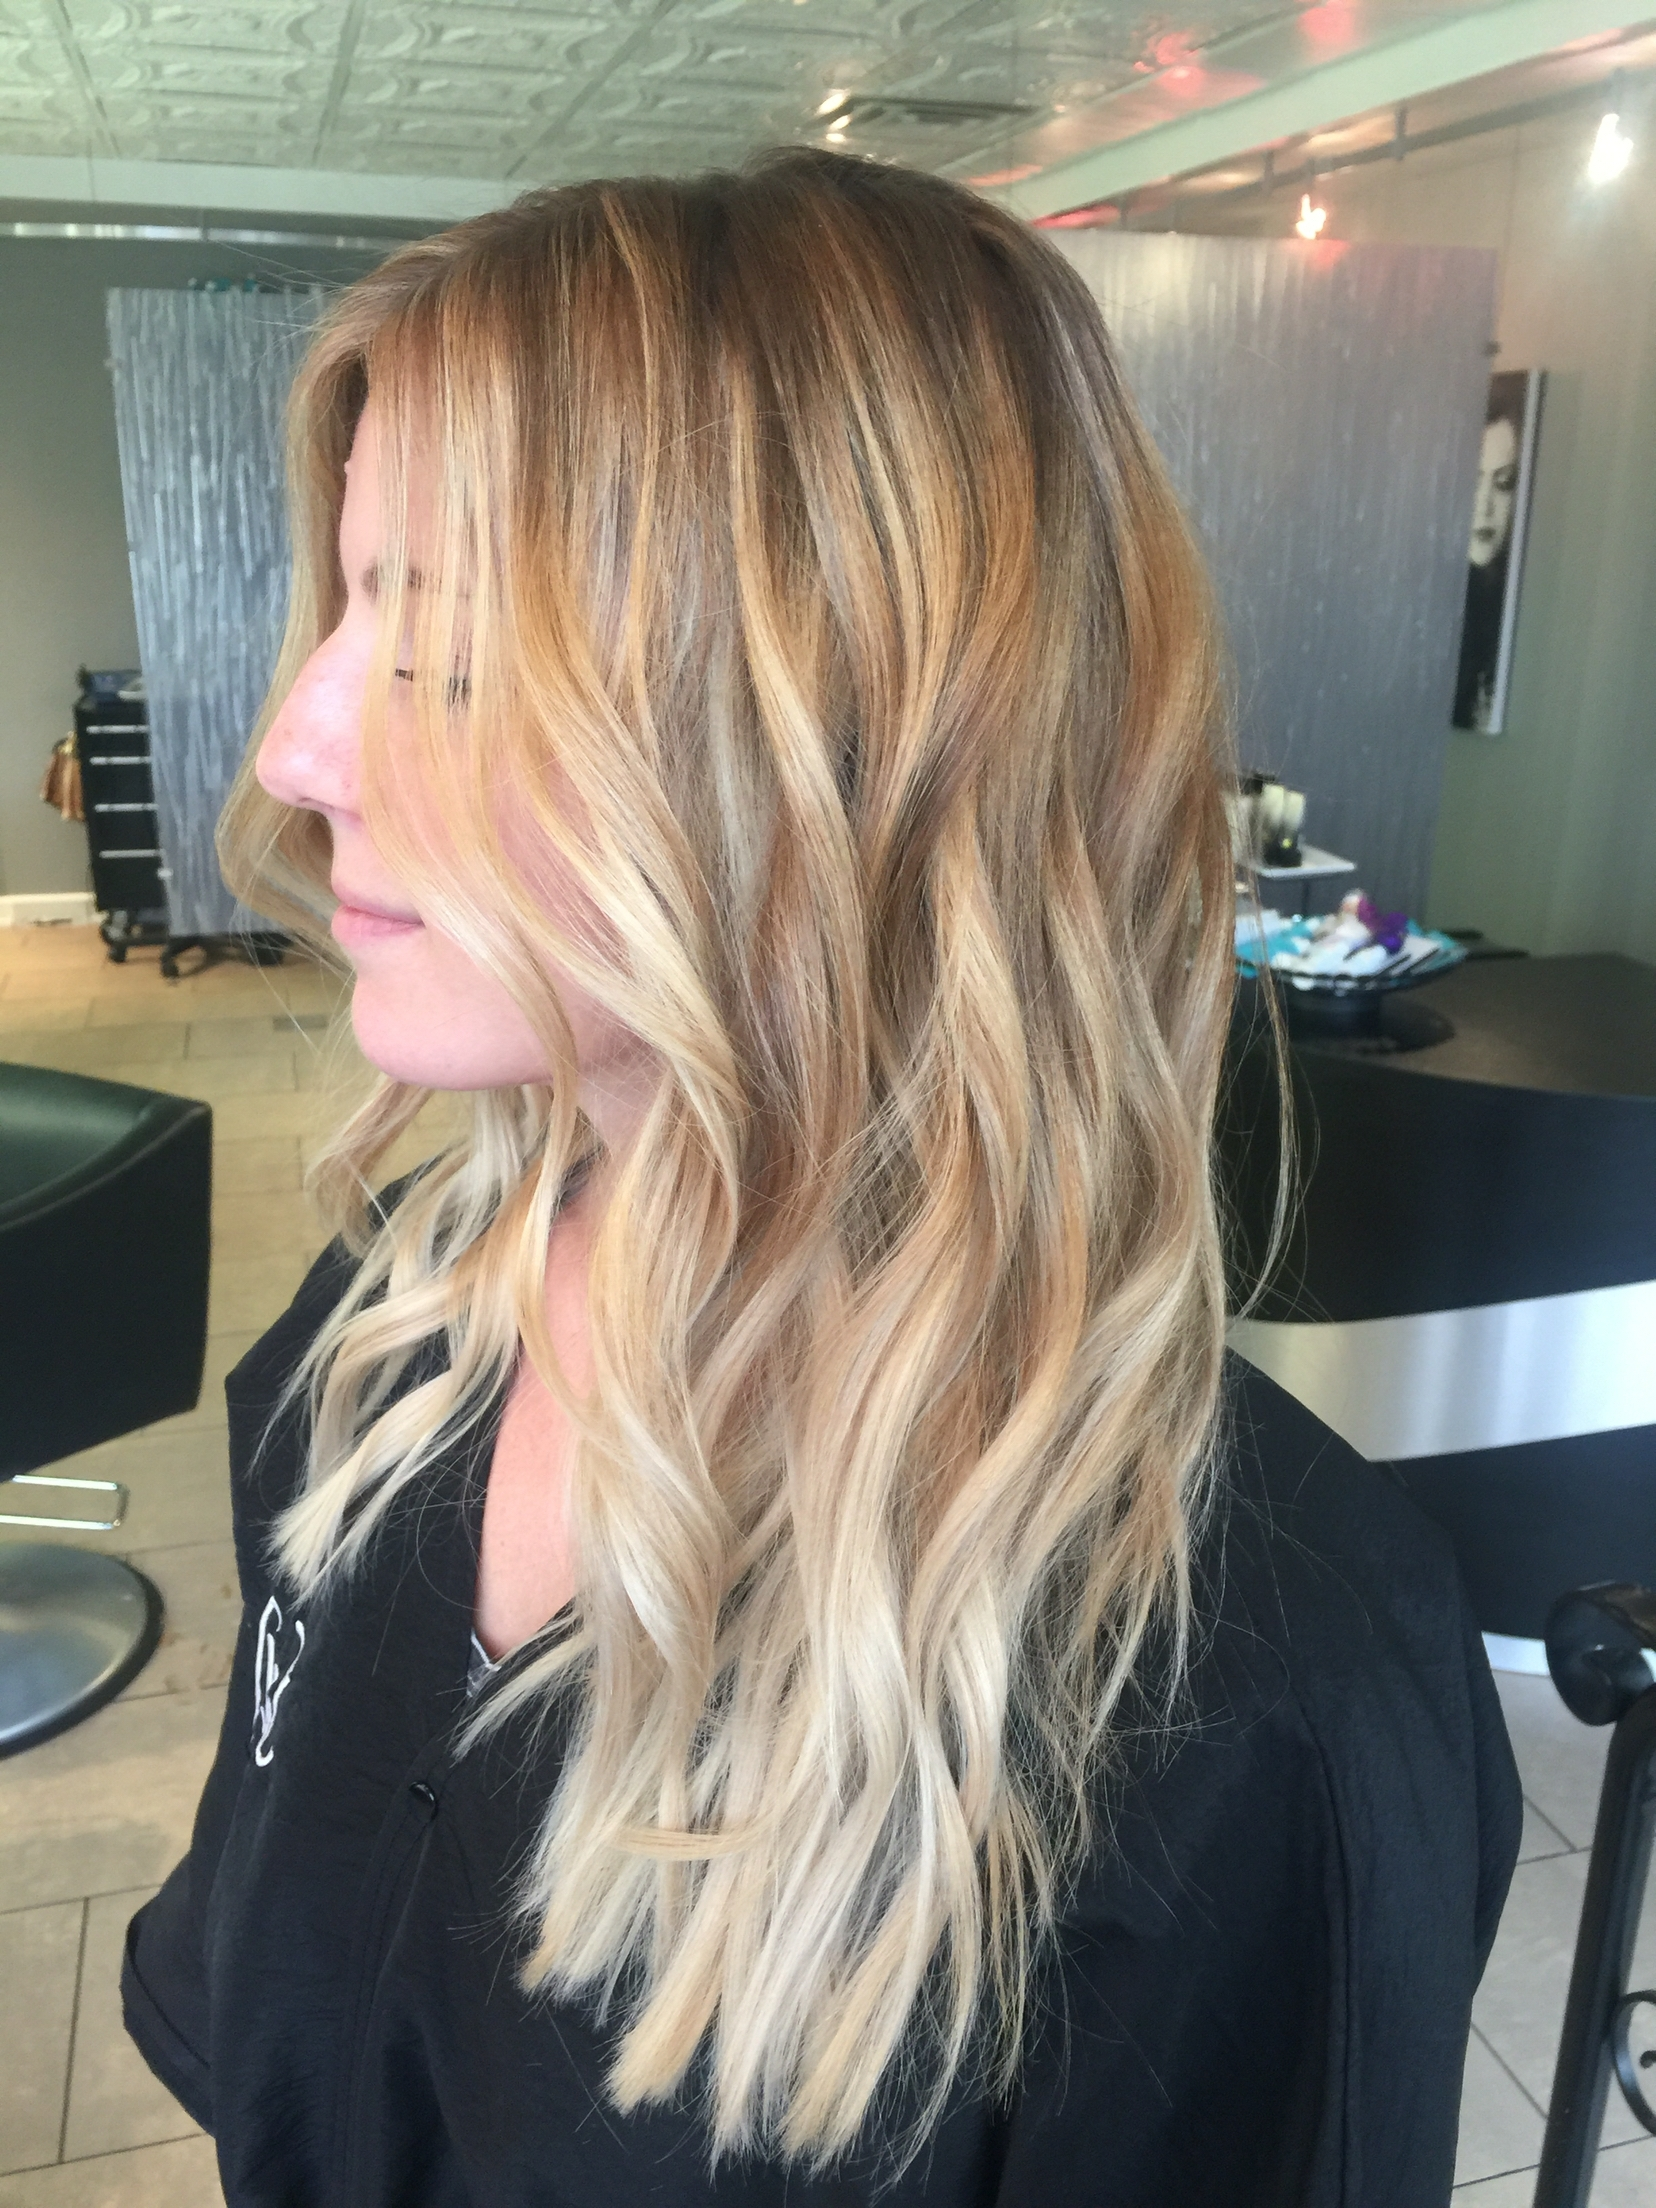 Most Popular Loose Curls Blonde With Streaks Within 50 + Hair Colors And Highlights Inspiration For Women (View 15 of 20)